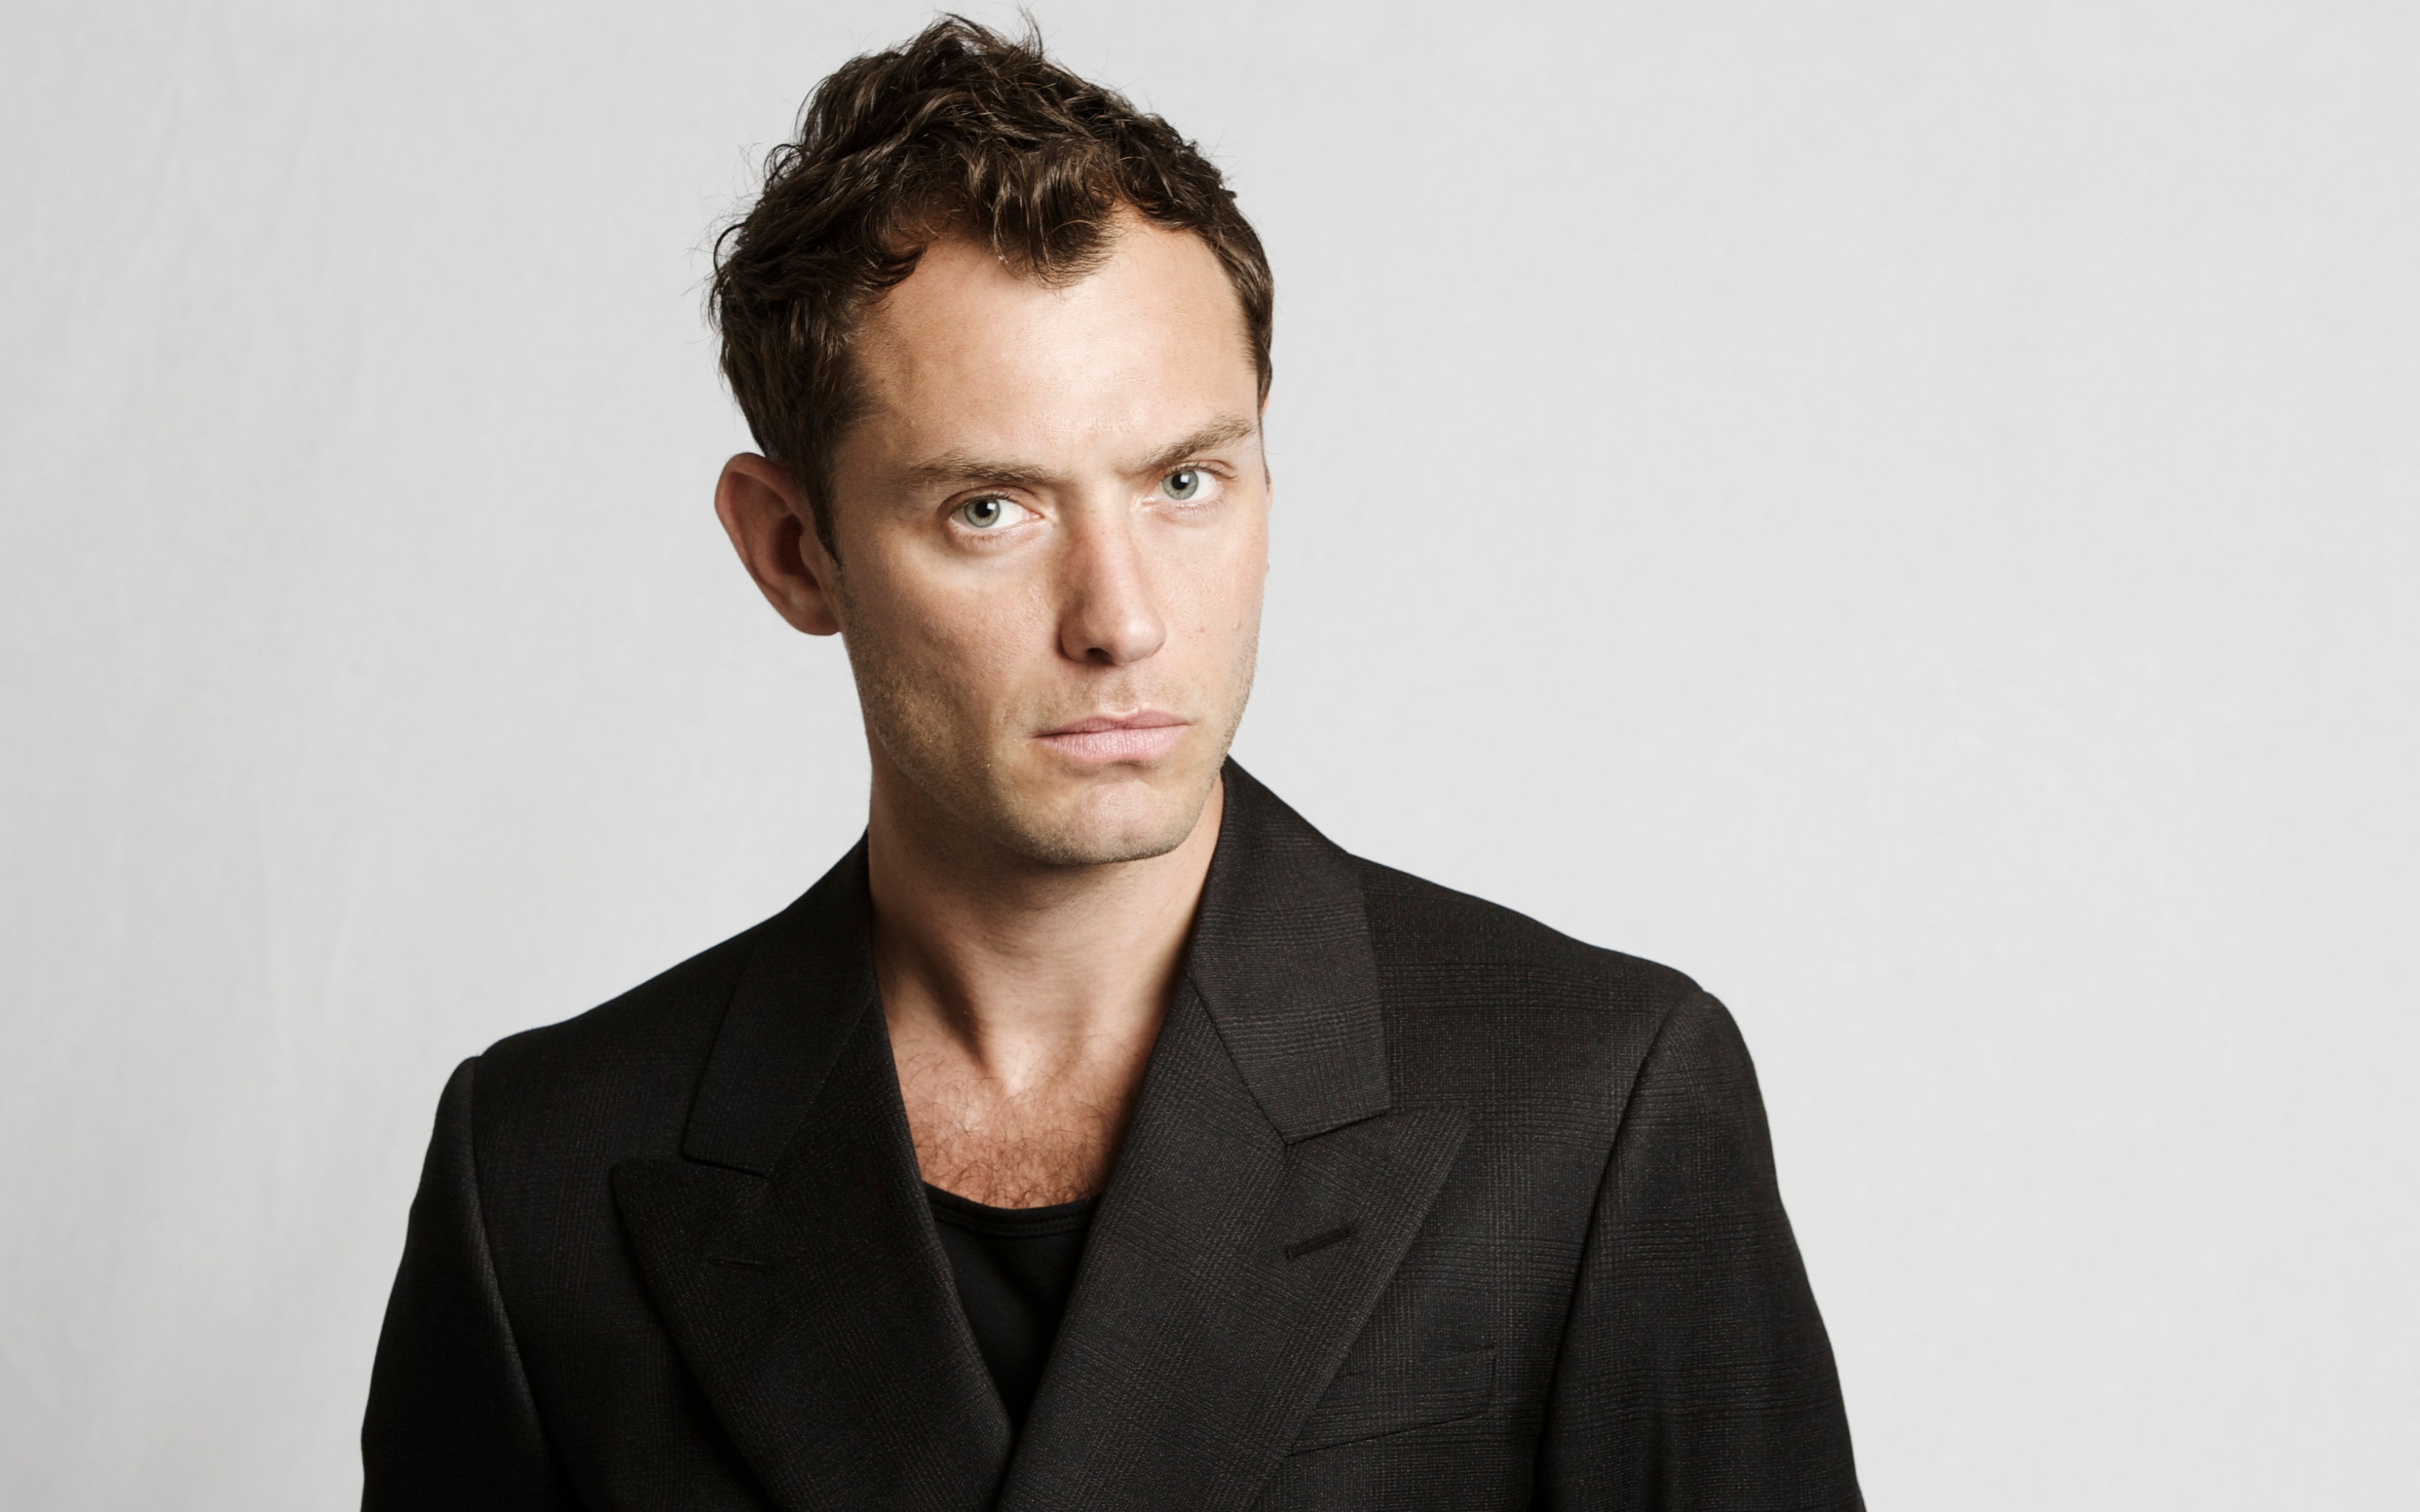 Jude Law Nabs Male Lead in Captain Marvel Film